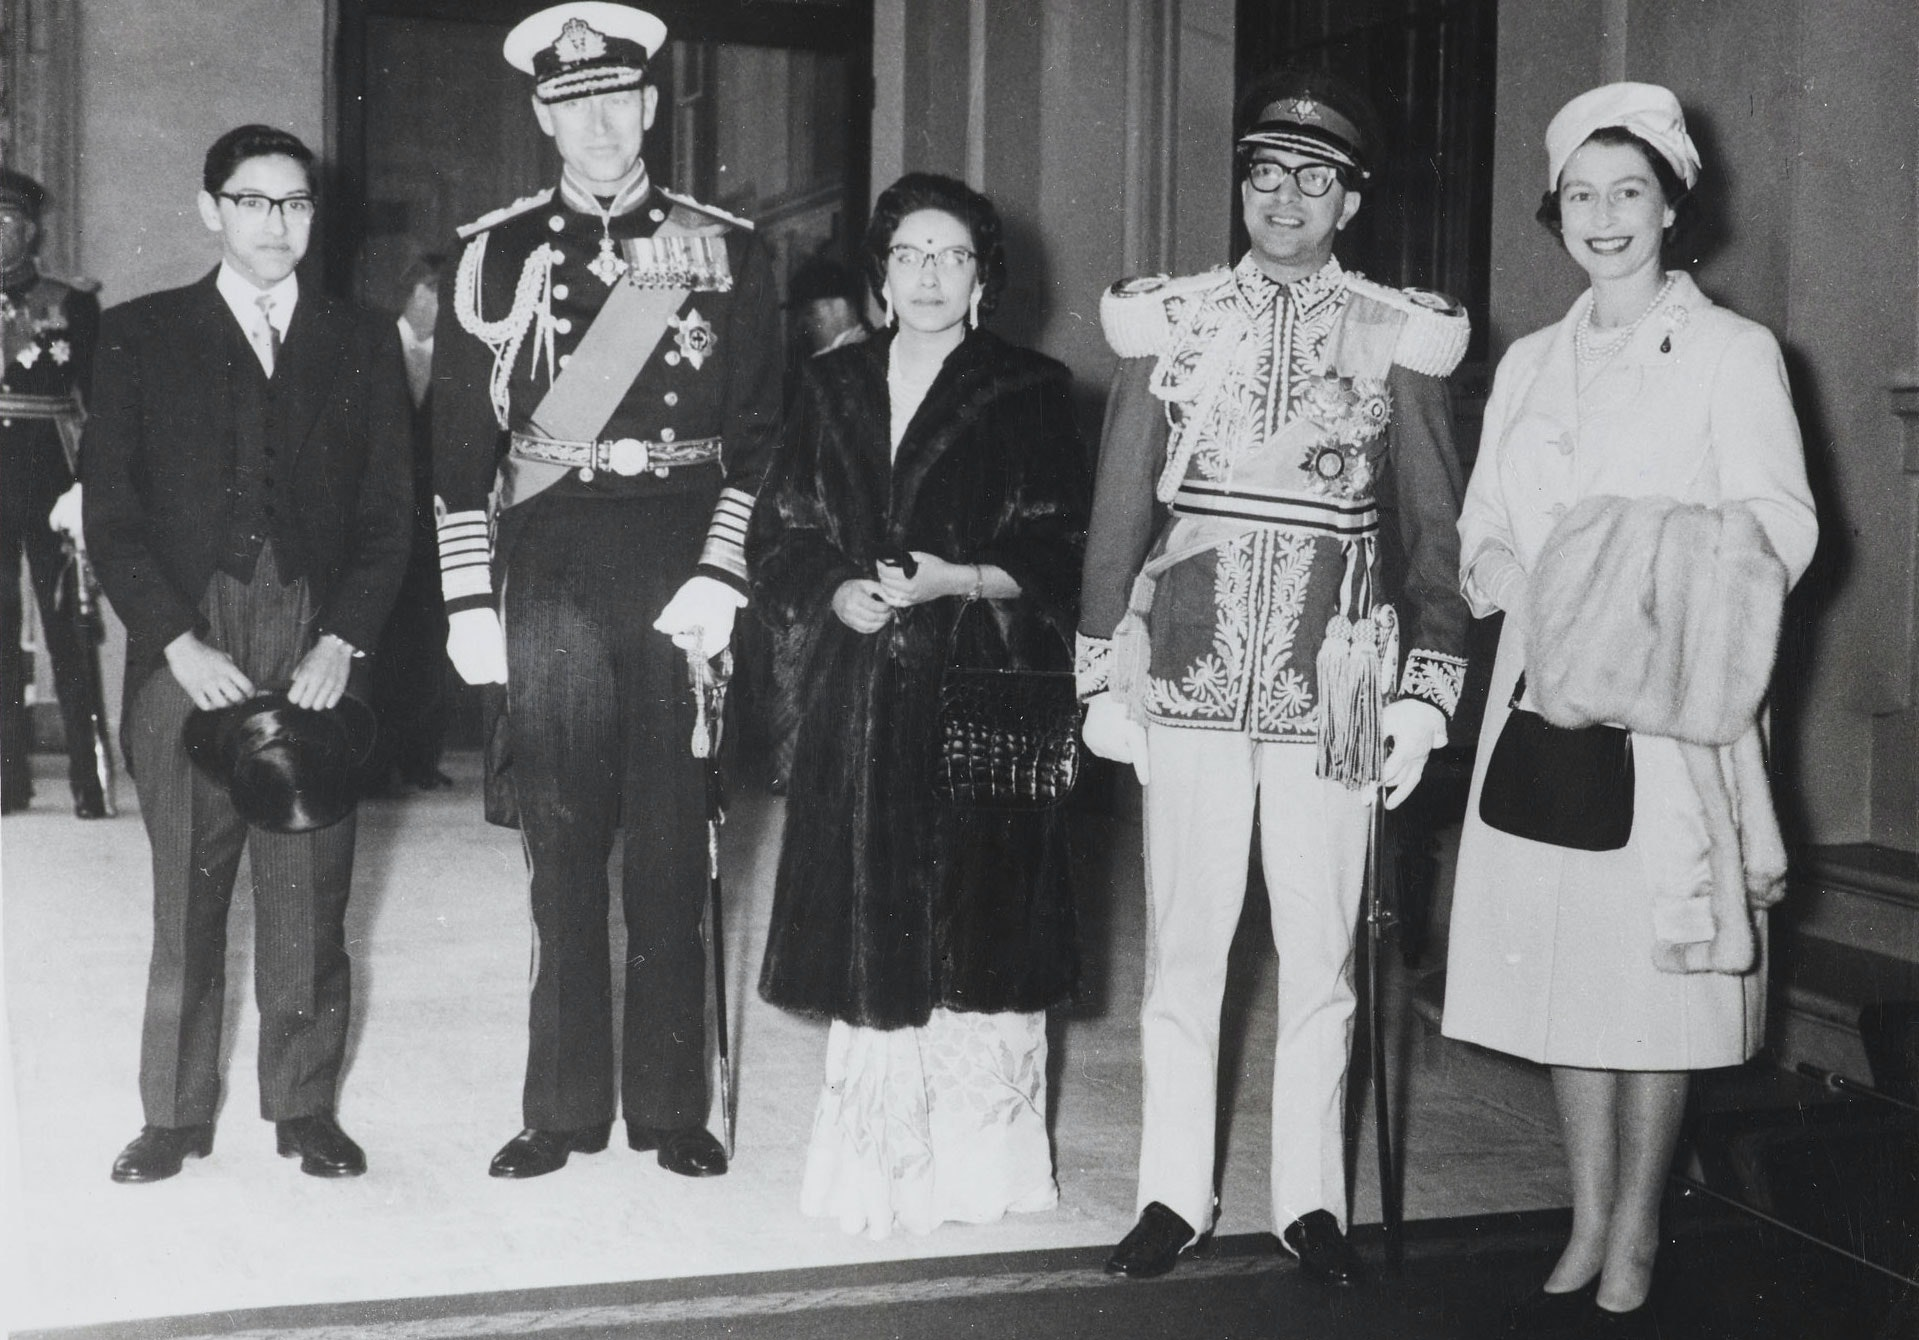 Group photograph with (l-r): The Duke of Edinburgh wearing Admiral of the Fleet uniform, Queen Ratna of Nepal, King Mahendra of Nepal and Queen Elizabeth of Great Britain. Picture taken on their arrival at Buckingham Palace.